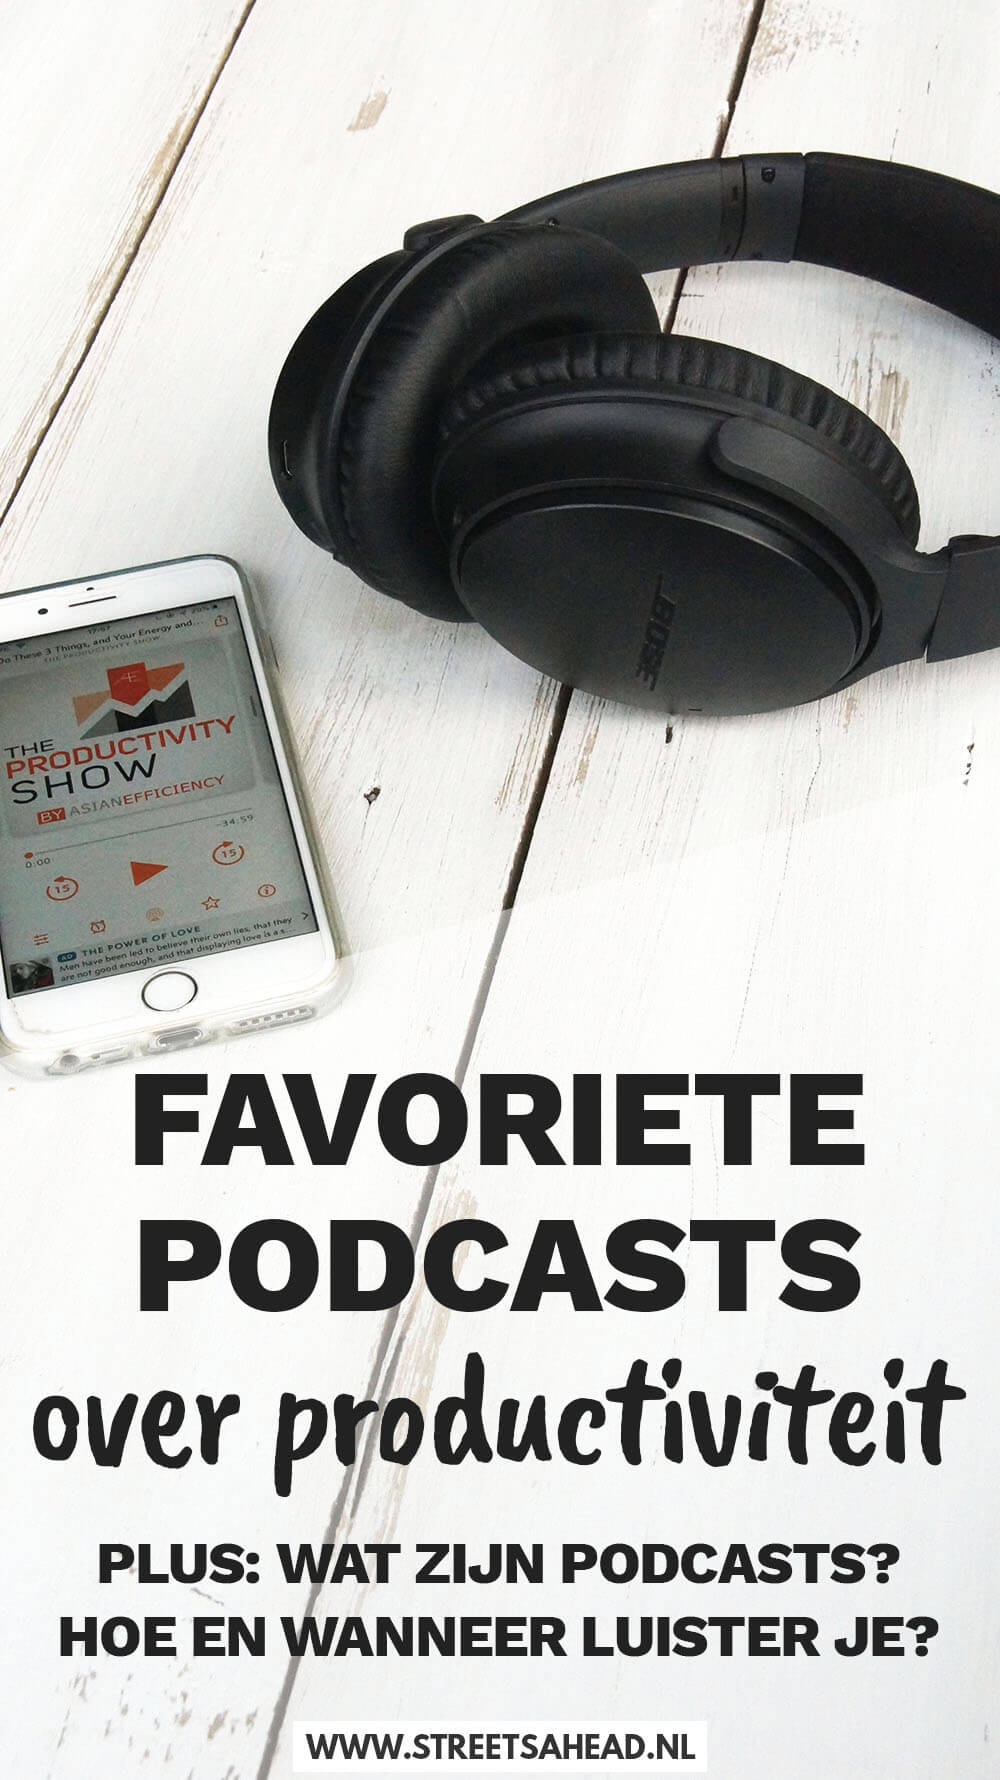 5x favoriete podcasts over productiviteit